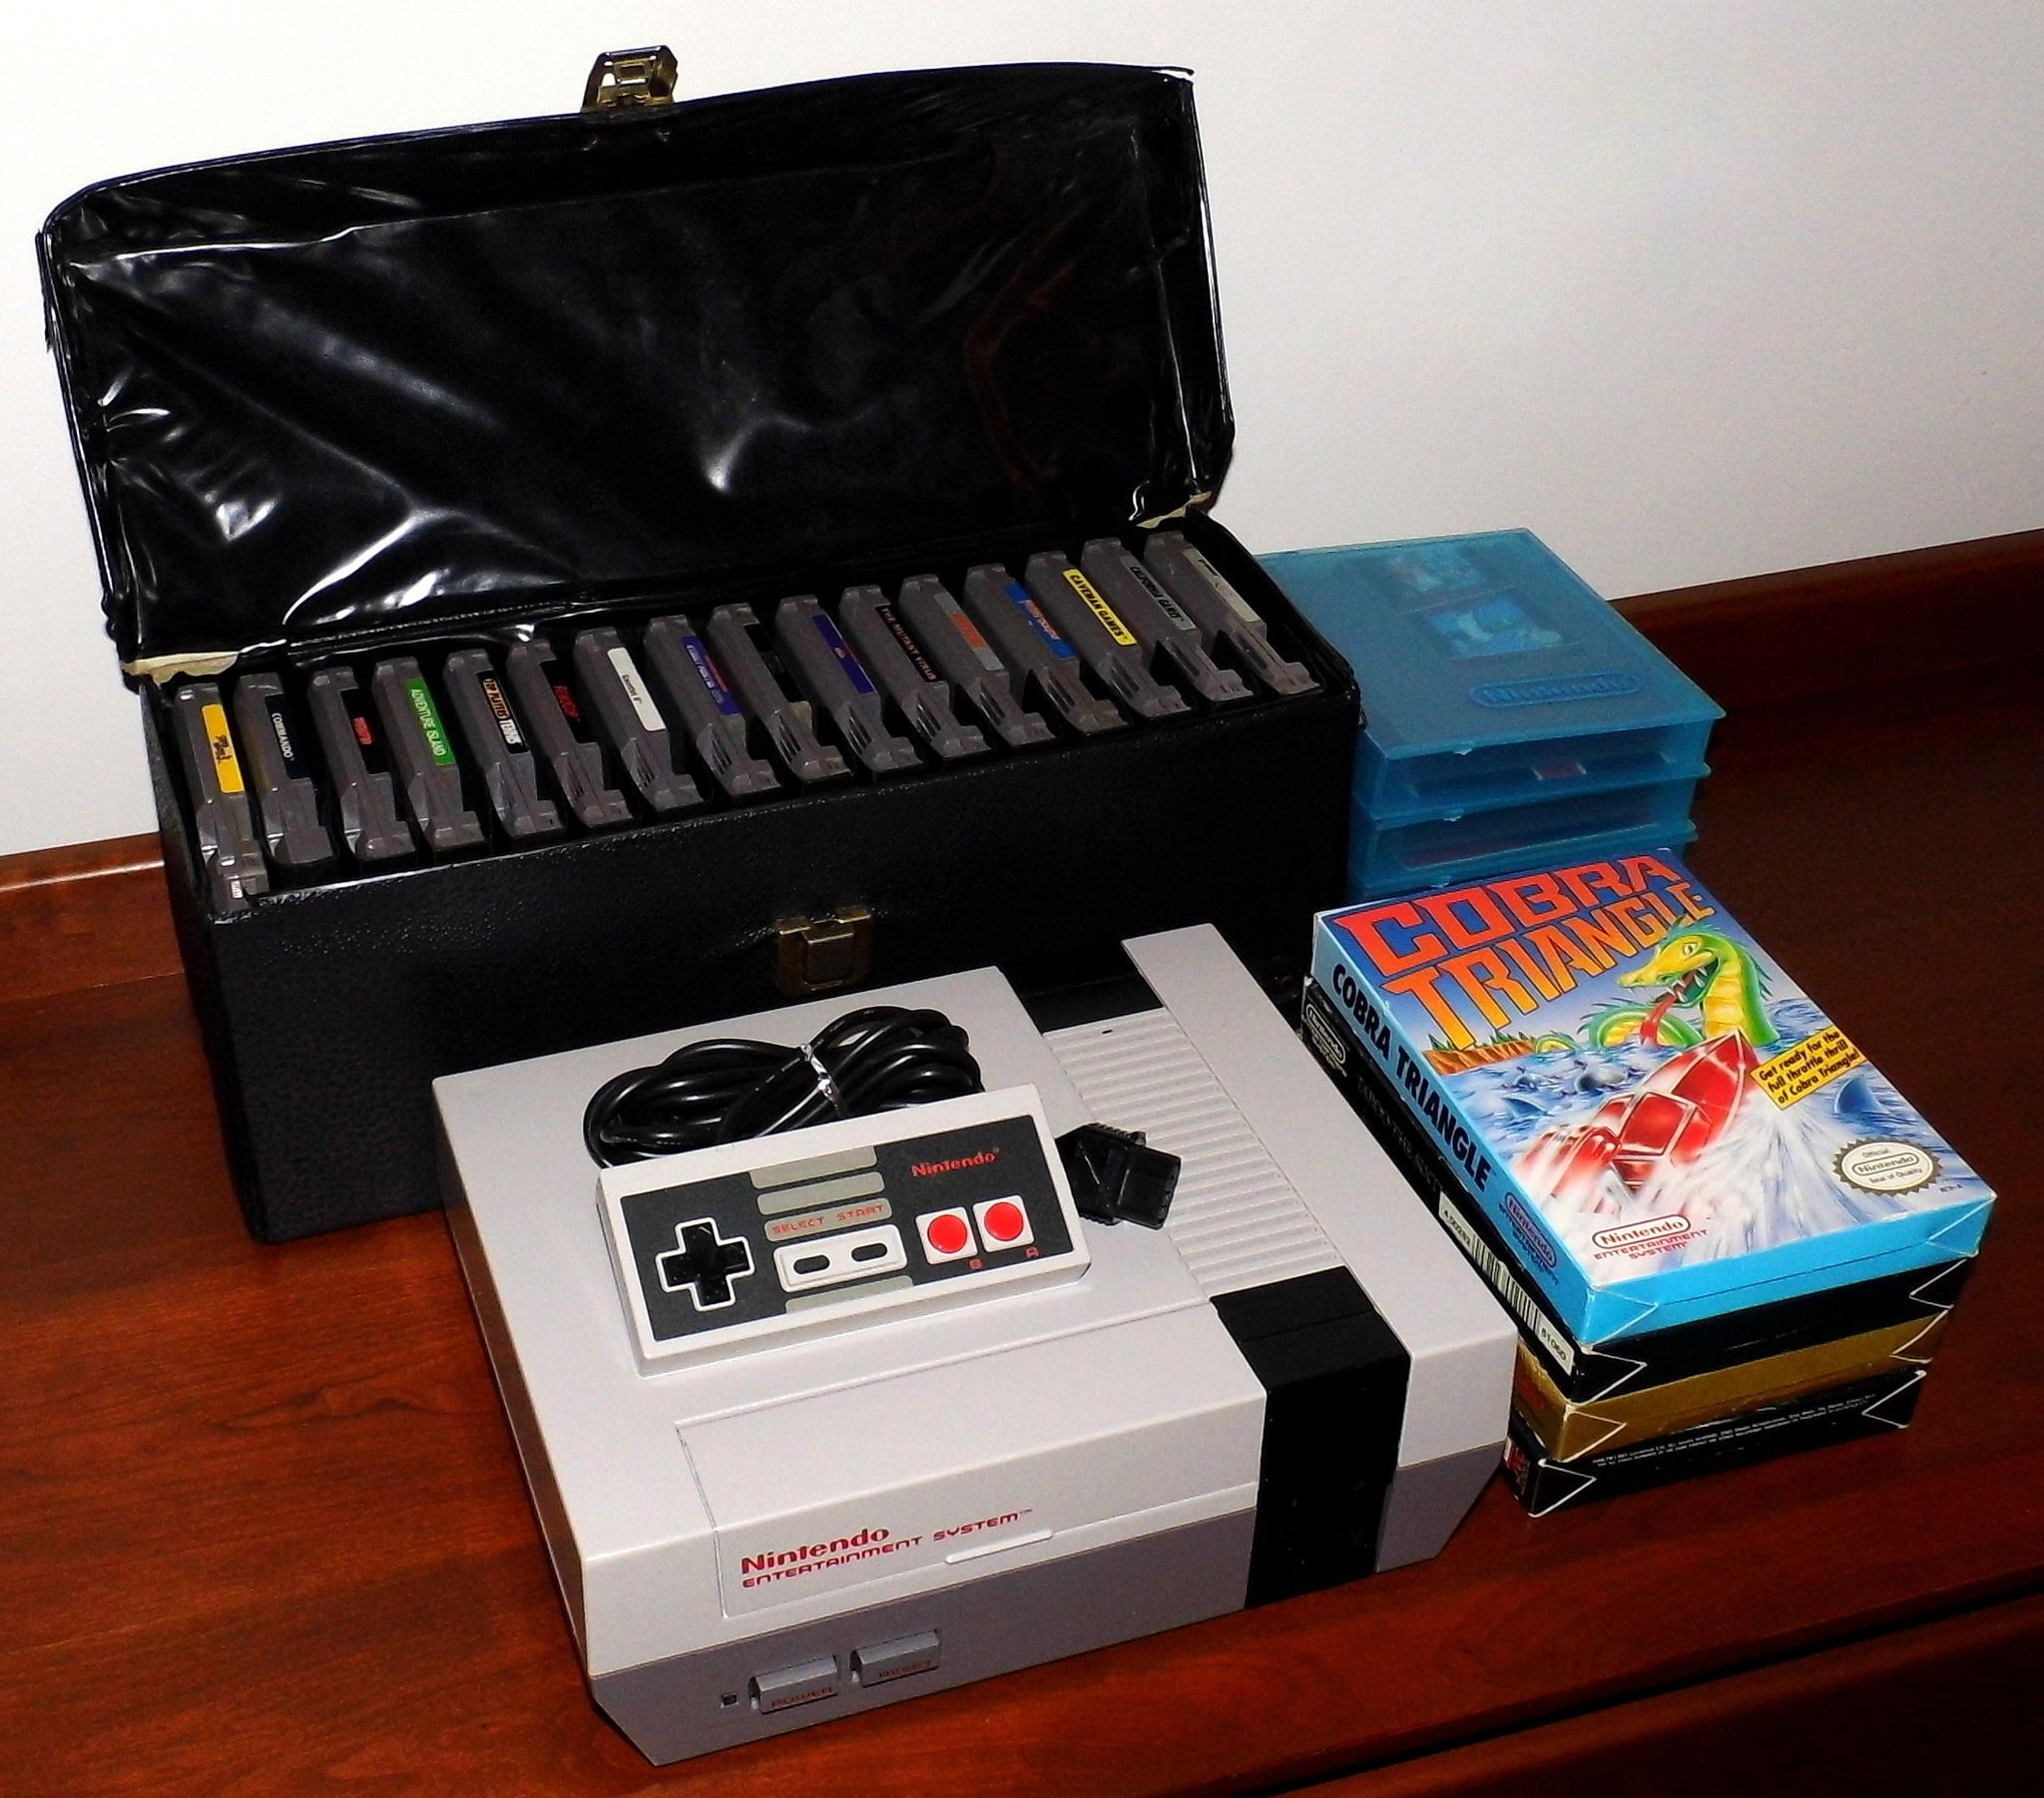 Console Nintendo 1985: Vintage Nintendo Entertainment System Game Console, Model